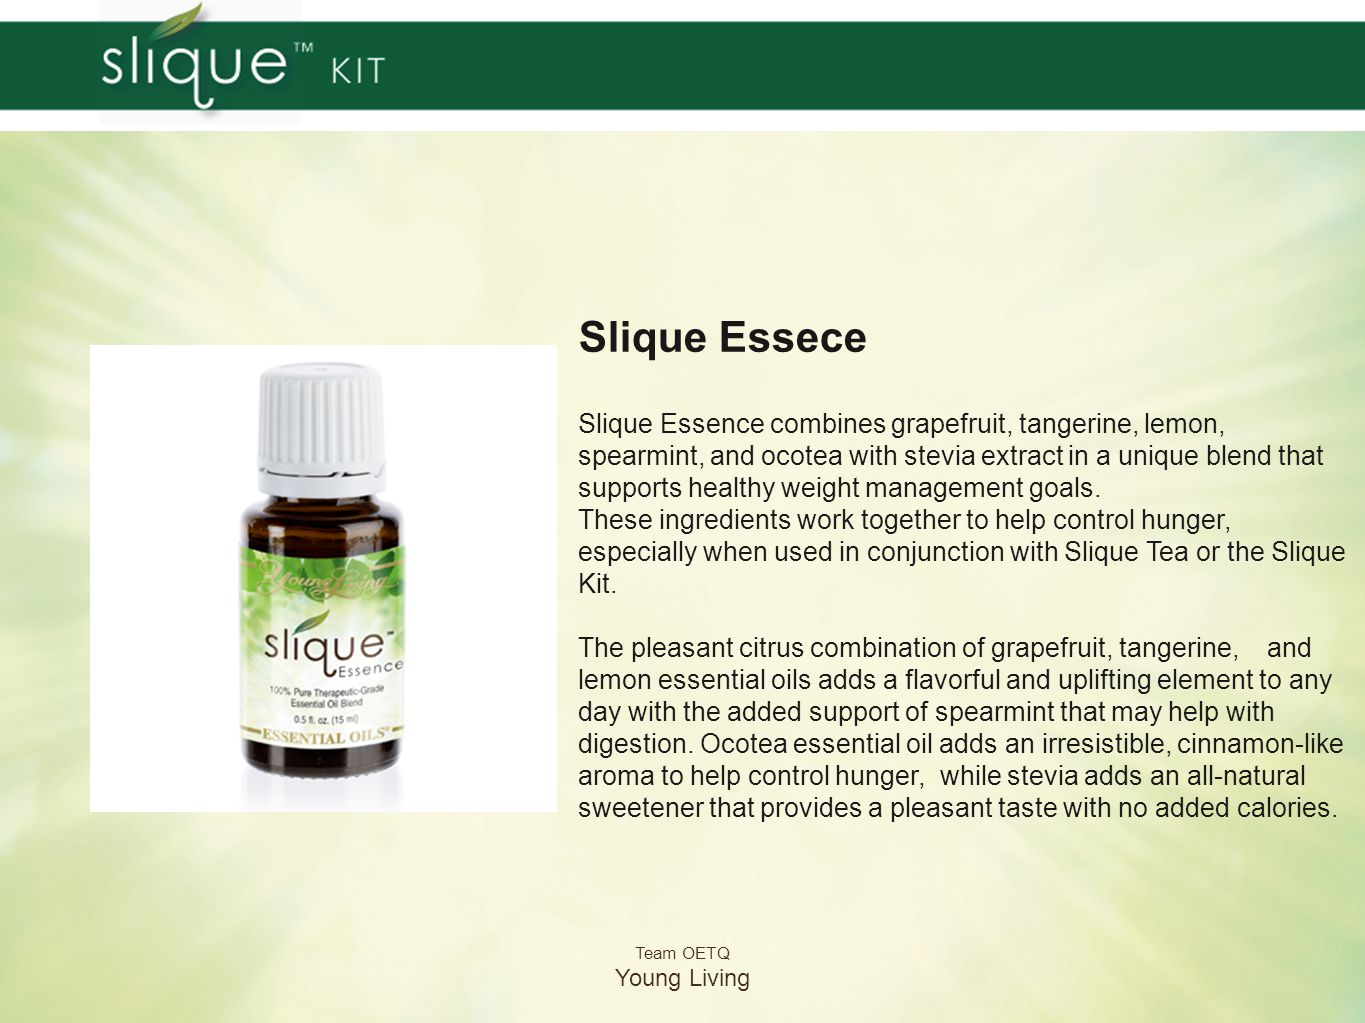 Team OETQ Young Living Slique Essece Slique Essence combines grapefruit, tangerine, lemon, spearmint, and ocotea with stevia extract in a unique blend